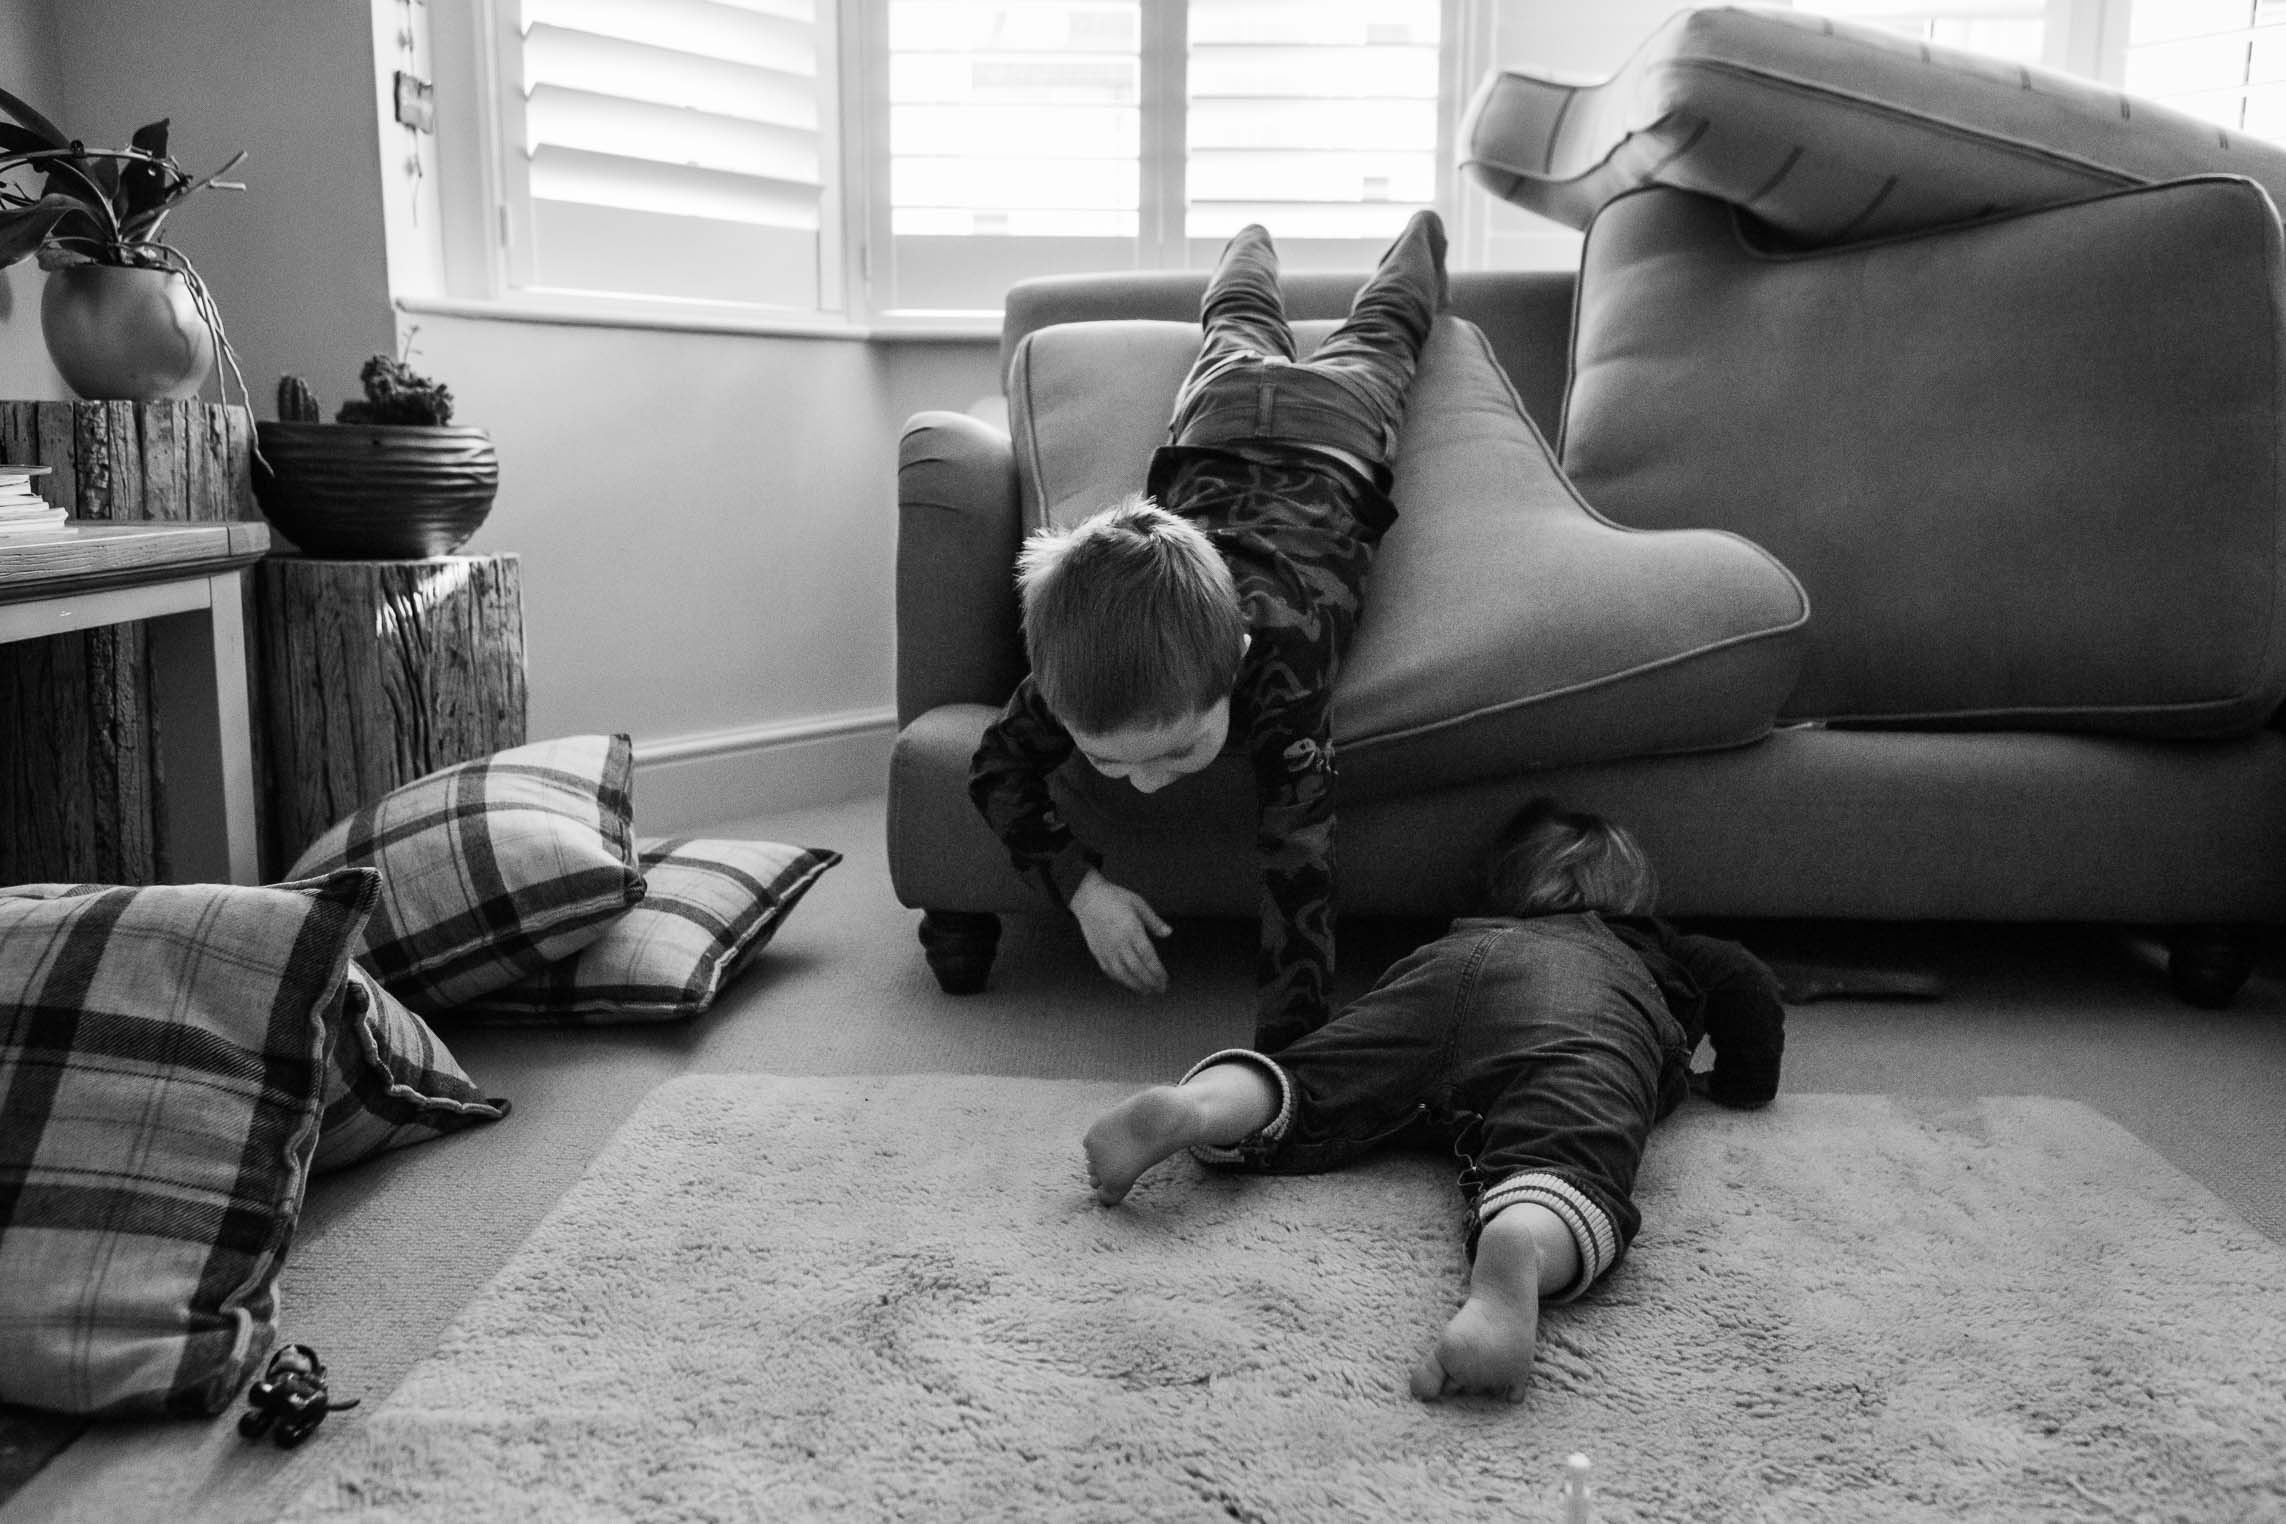 Award winning image of two boys playing on and under the sofa